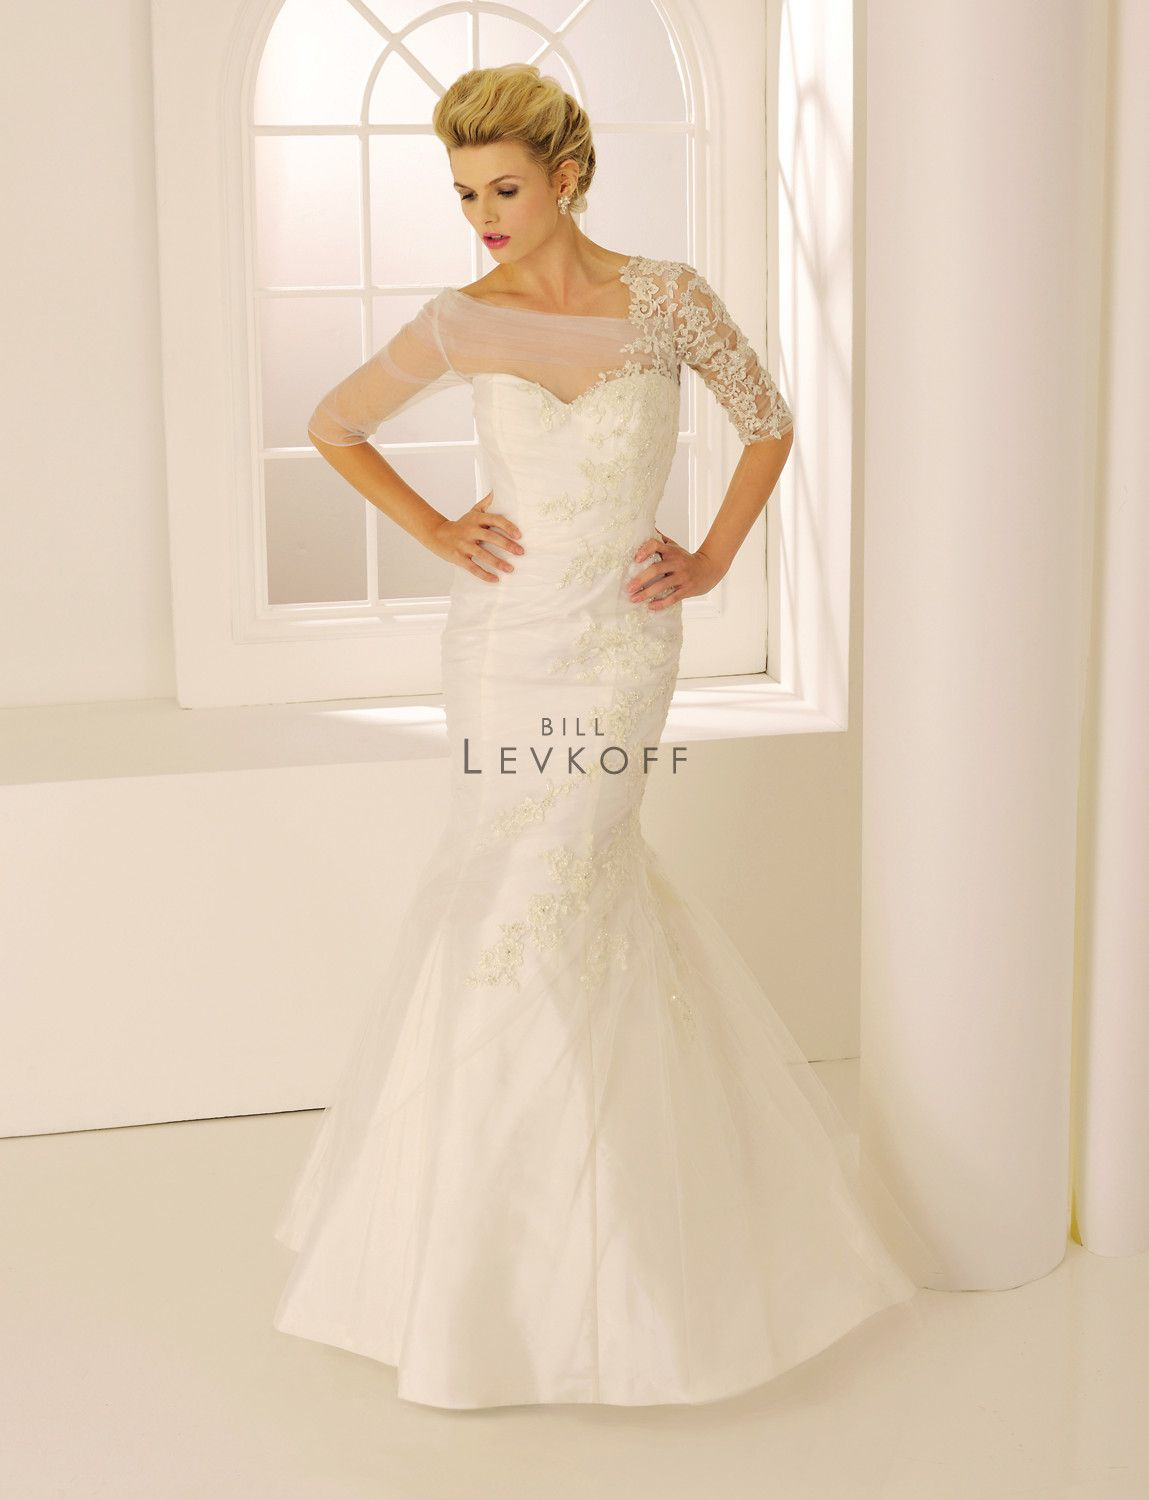 Bridal gown style bridal gowns wedding dresses by bill